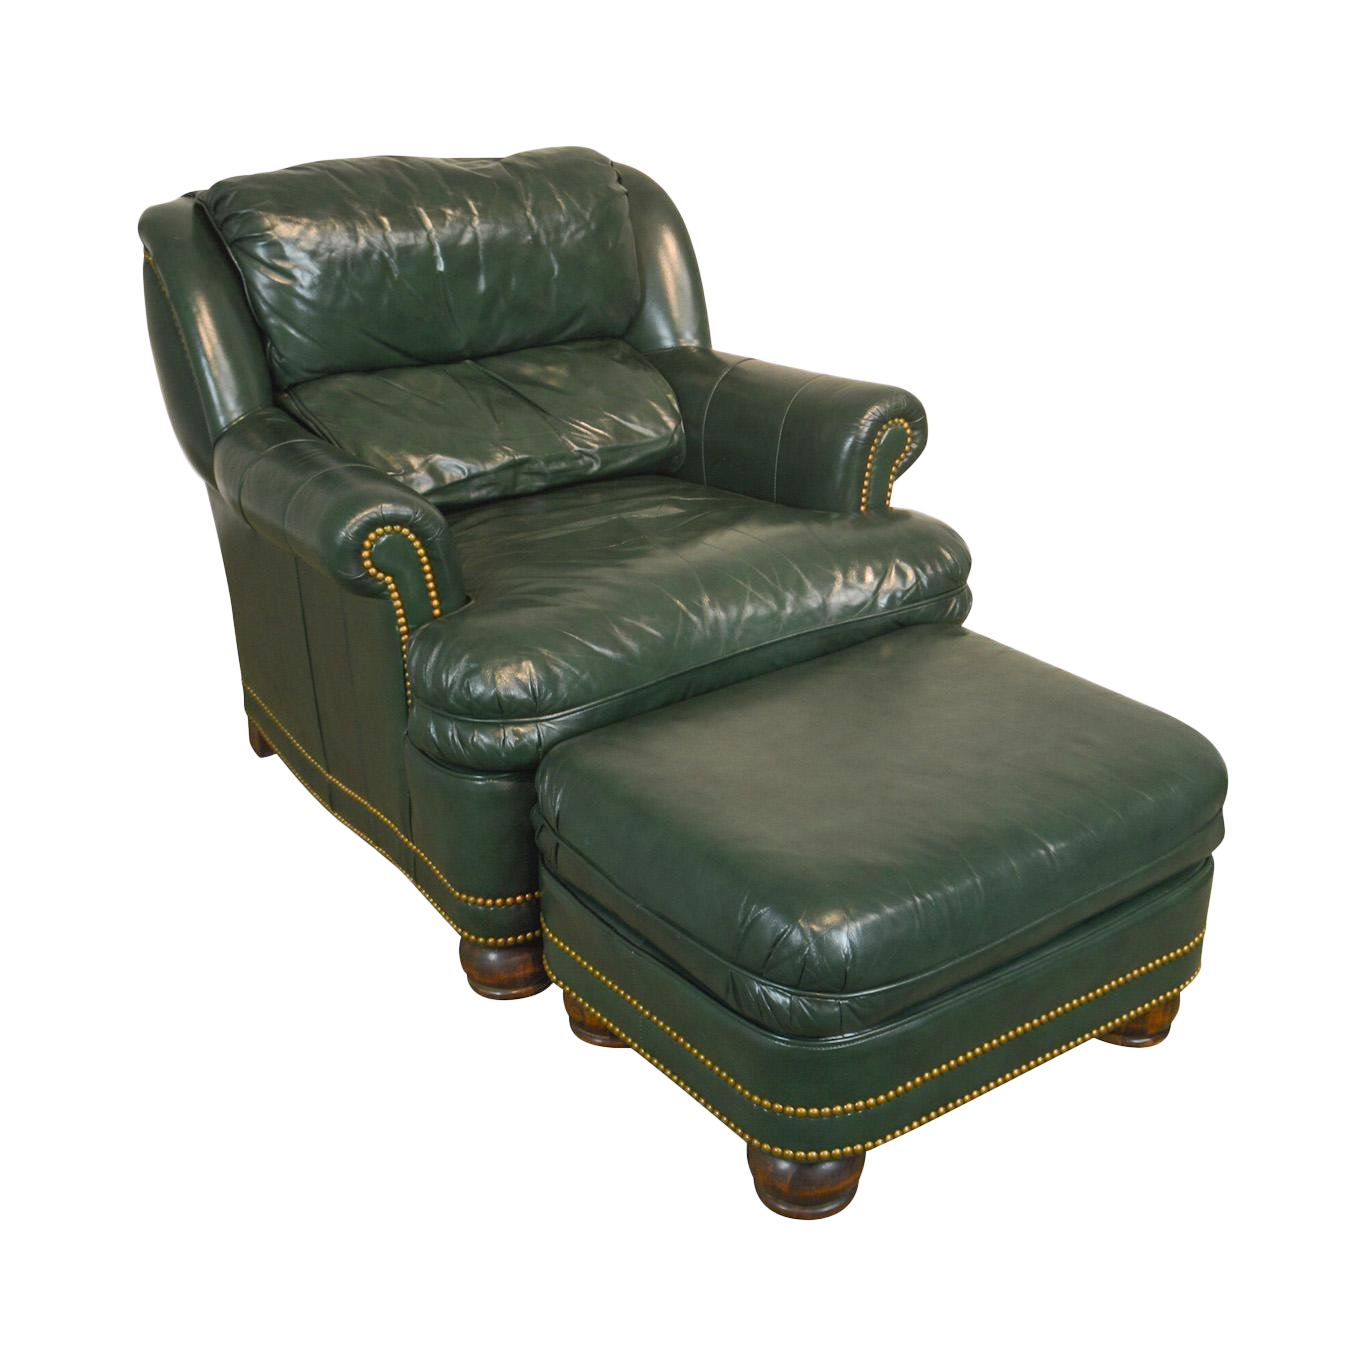 Incroyable Hancock U0026 Moore Green Leather Club Chair With Ottoman